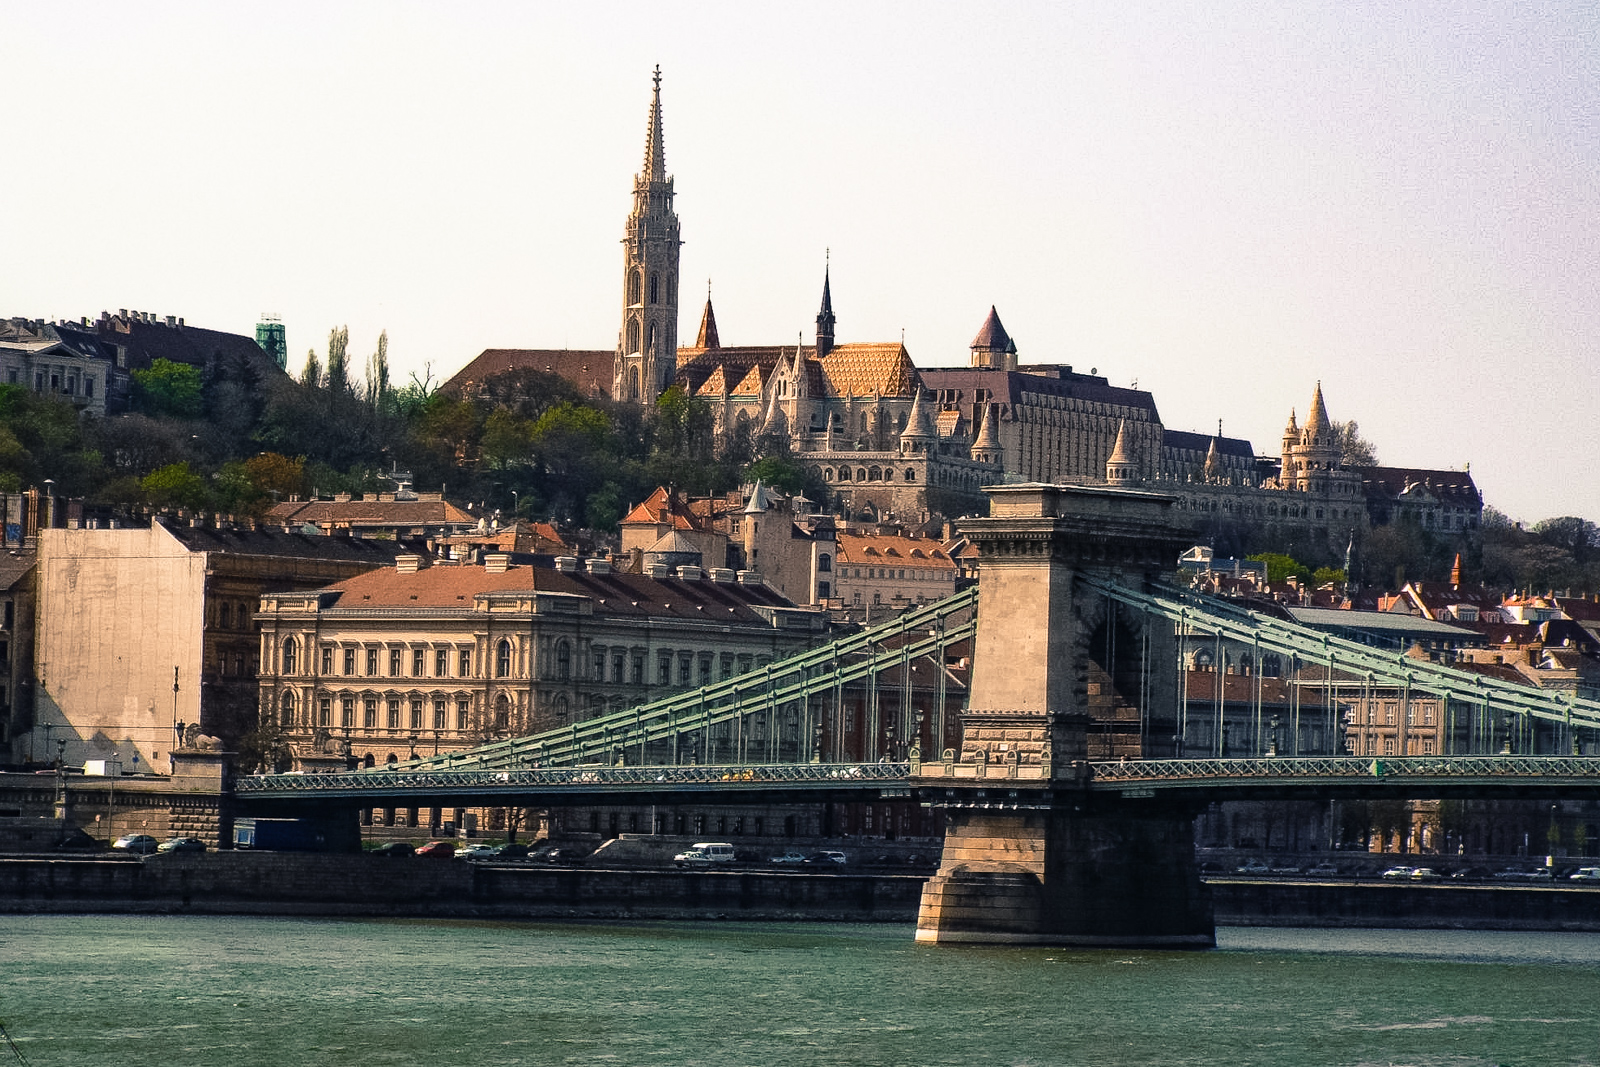 What to do in budapest in the city of hungary budapest to see the budapest chain bridge